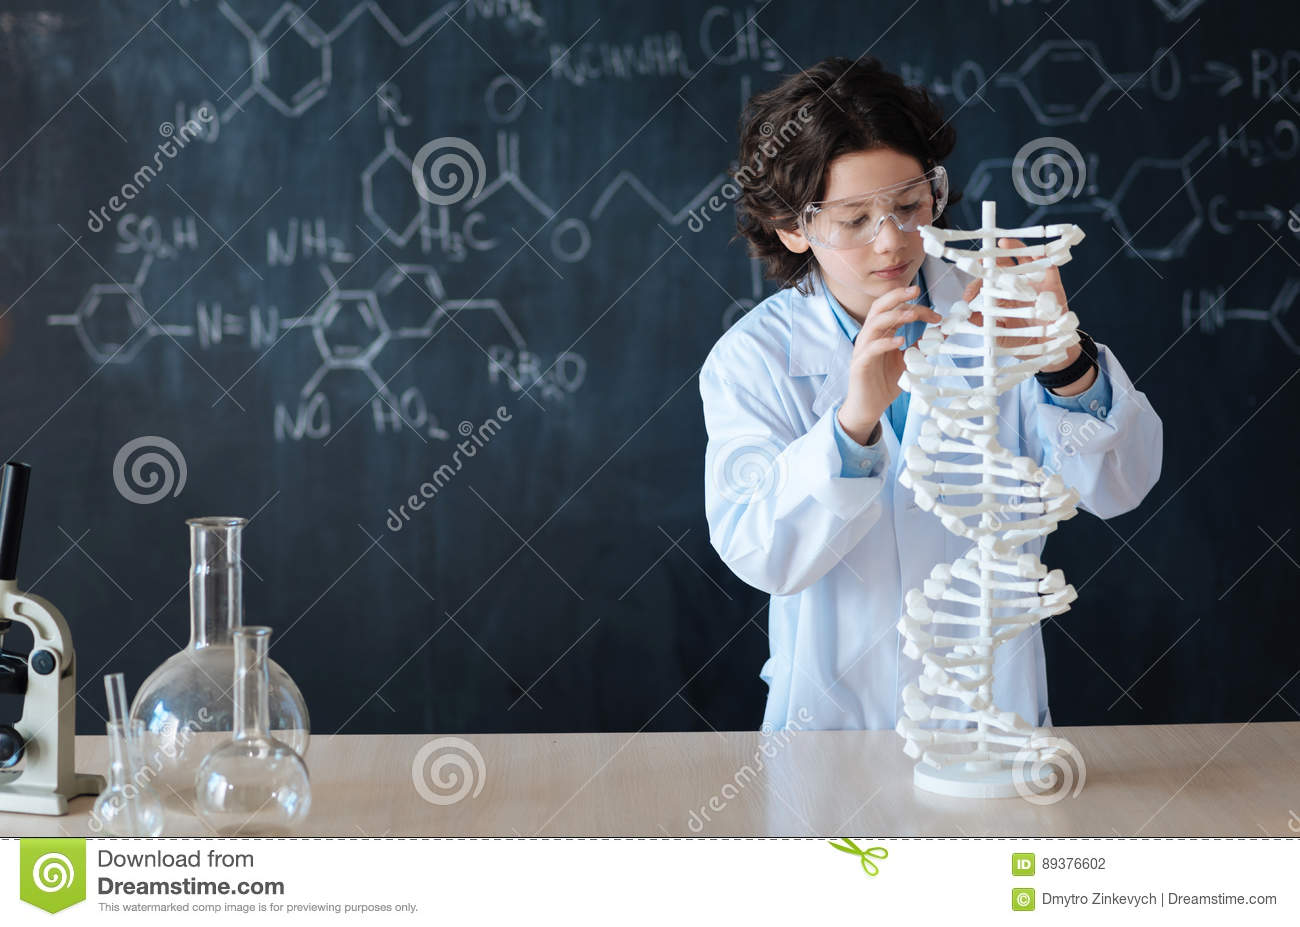 Smart Pupil Enjoying Chemistry Class At School Stock Photo - Image